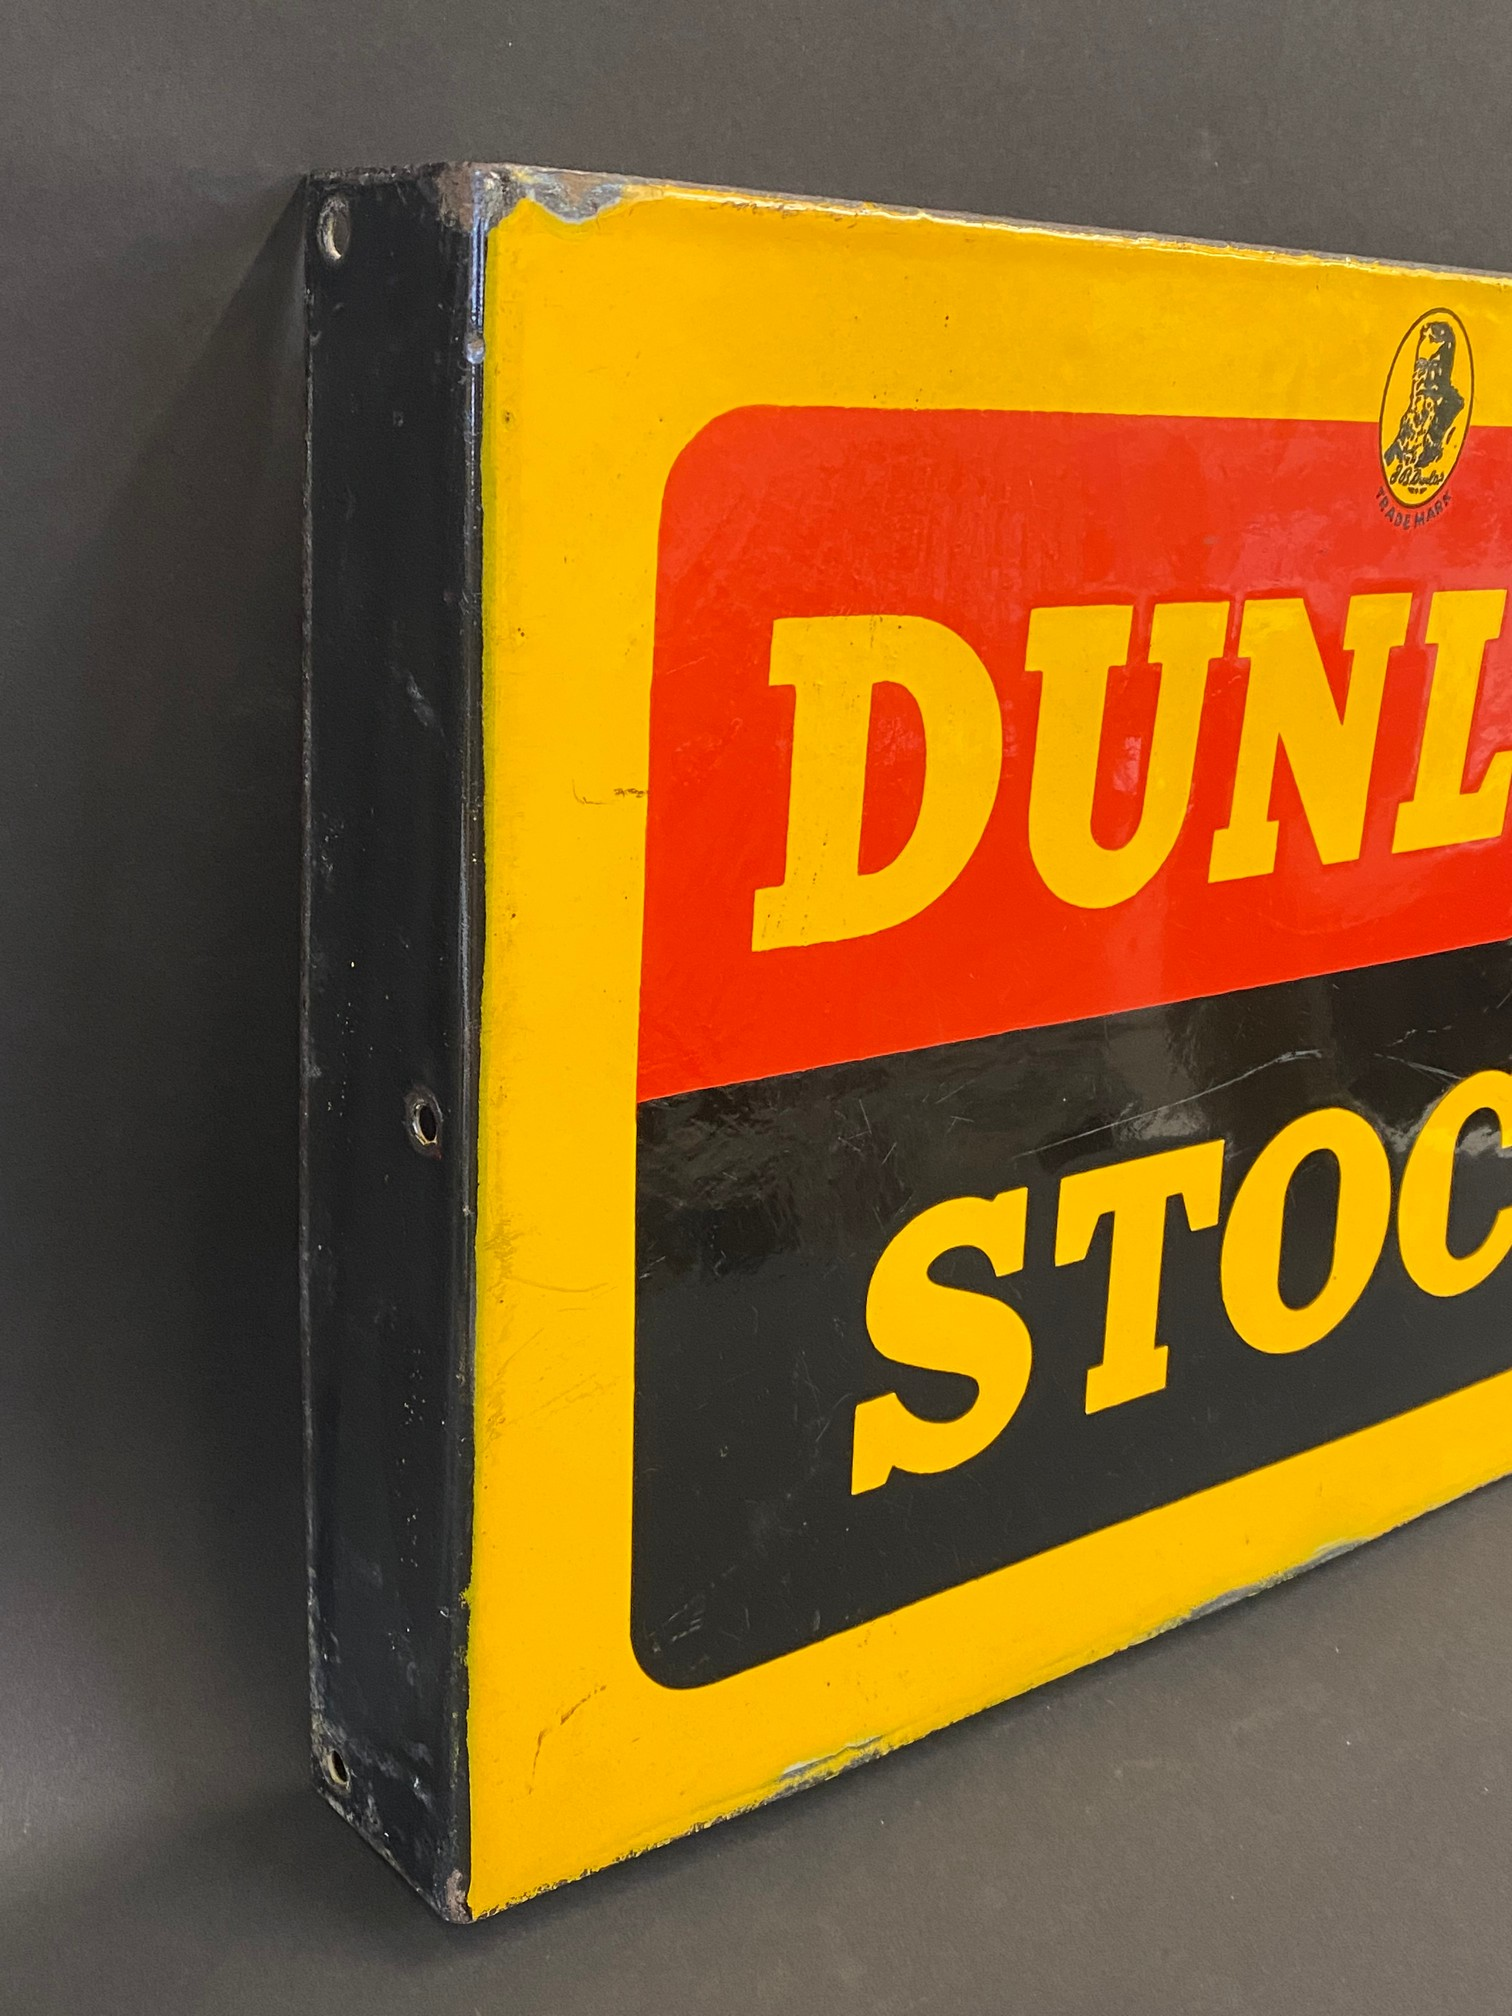 """A Dunlop Stock double sided enamel sign with hanging flange, in excellent condition, 18 x 12"""". - Image 4 of 4"""